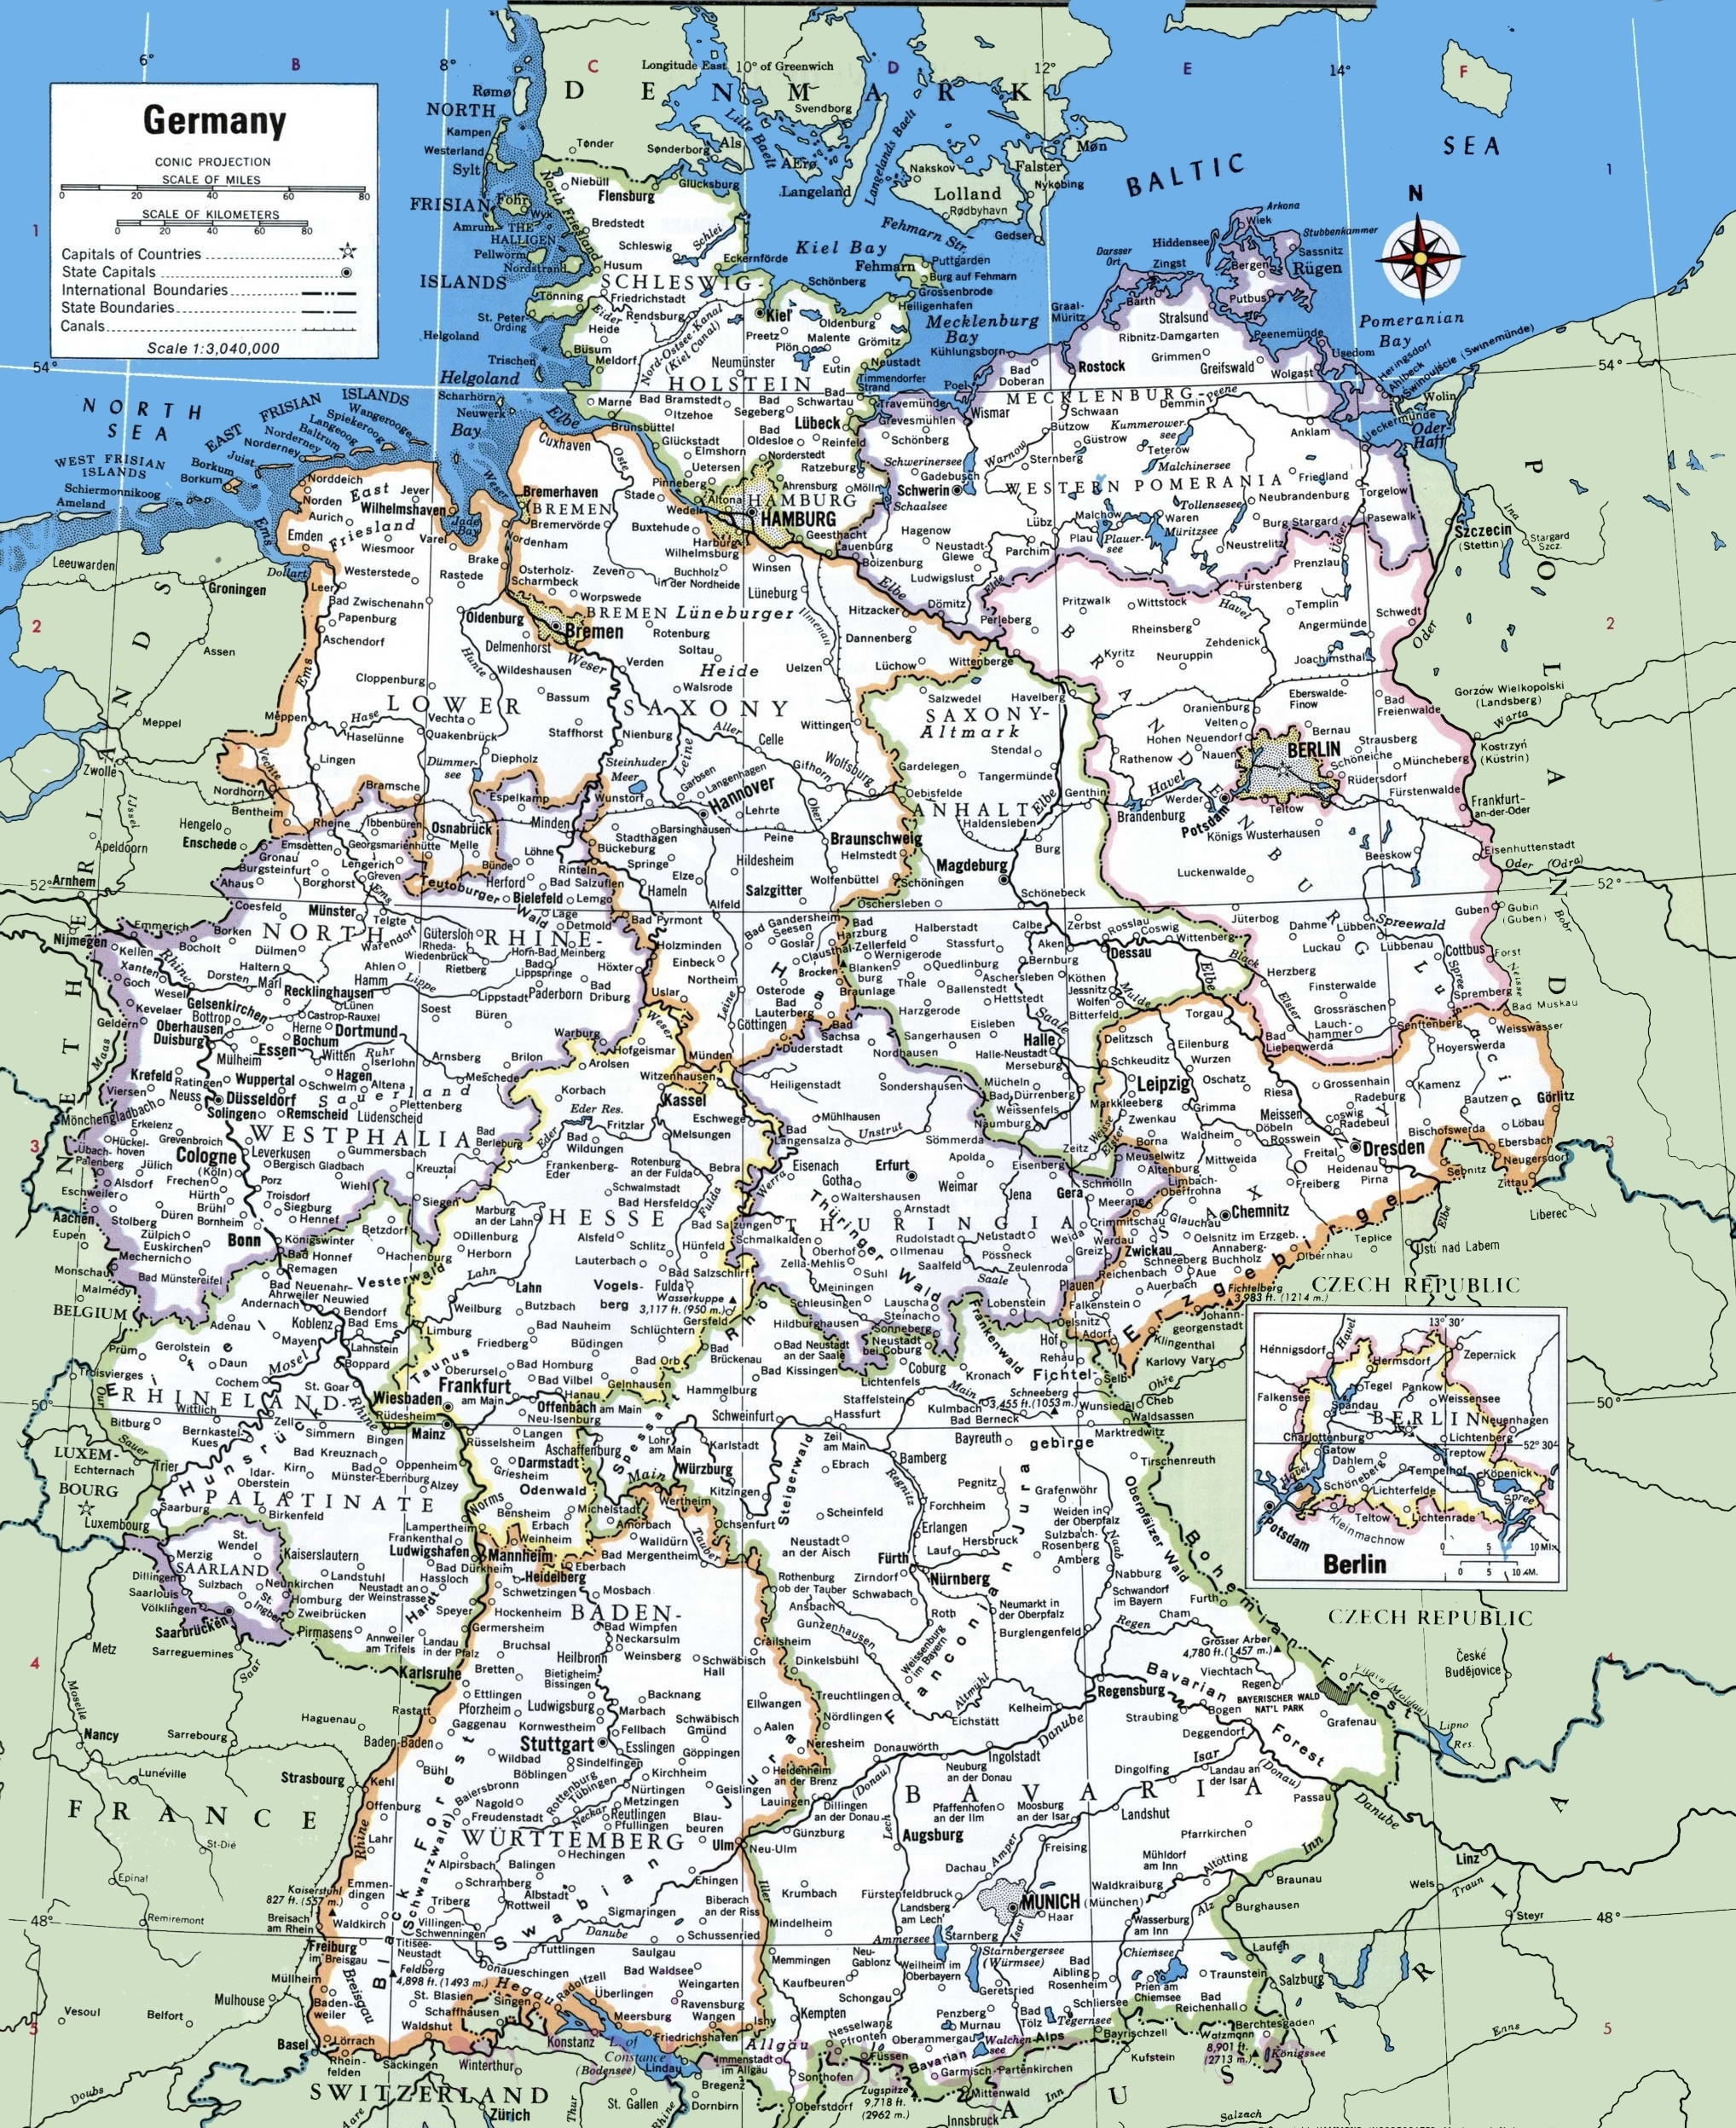 Map Of Germany With Cities And Towns inside Map Of Germany With Cities And Towns